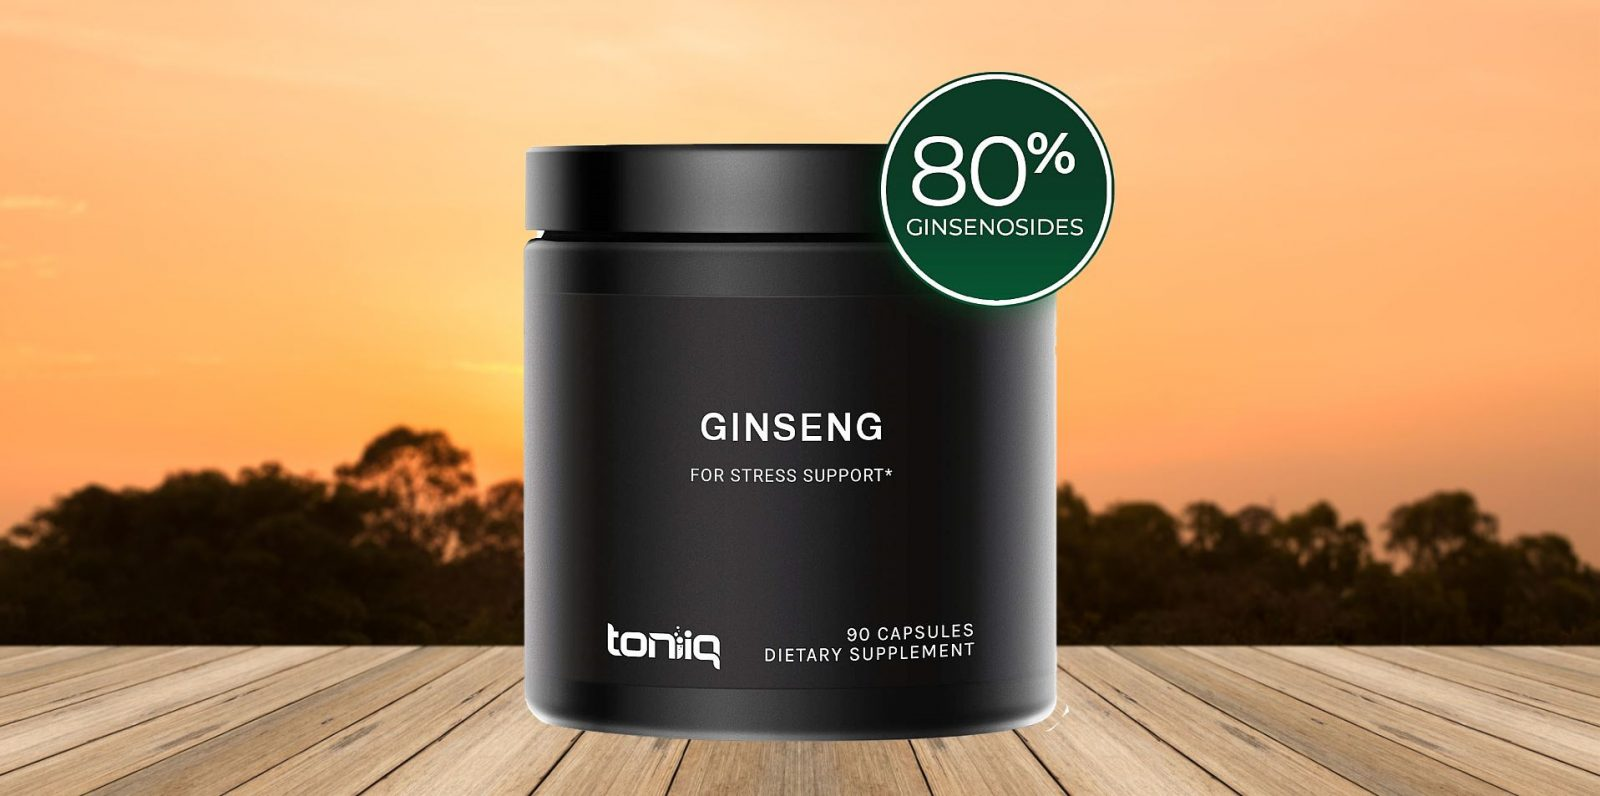 Toniiq Panax Ginseng Extract Capsules